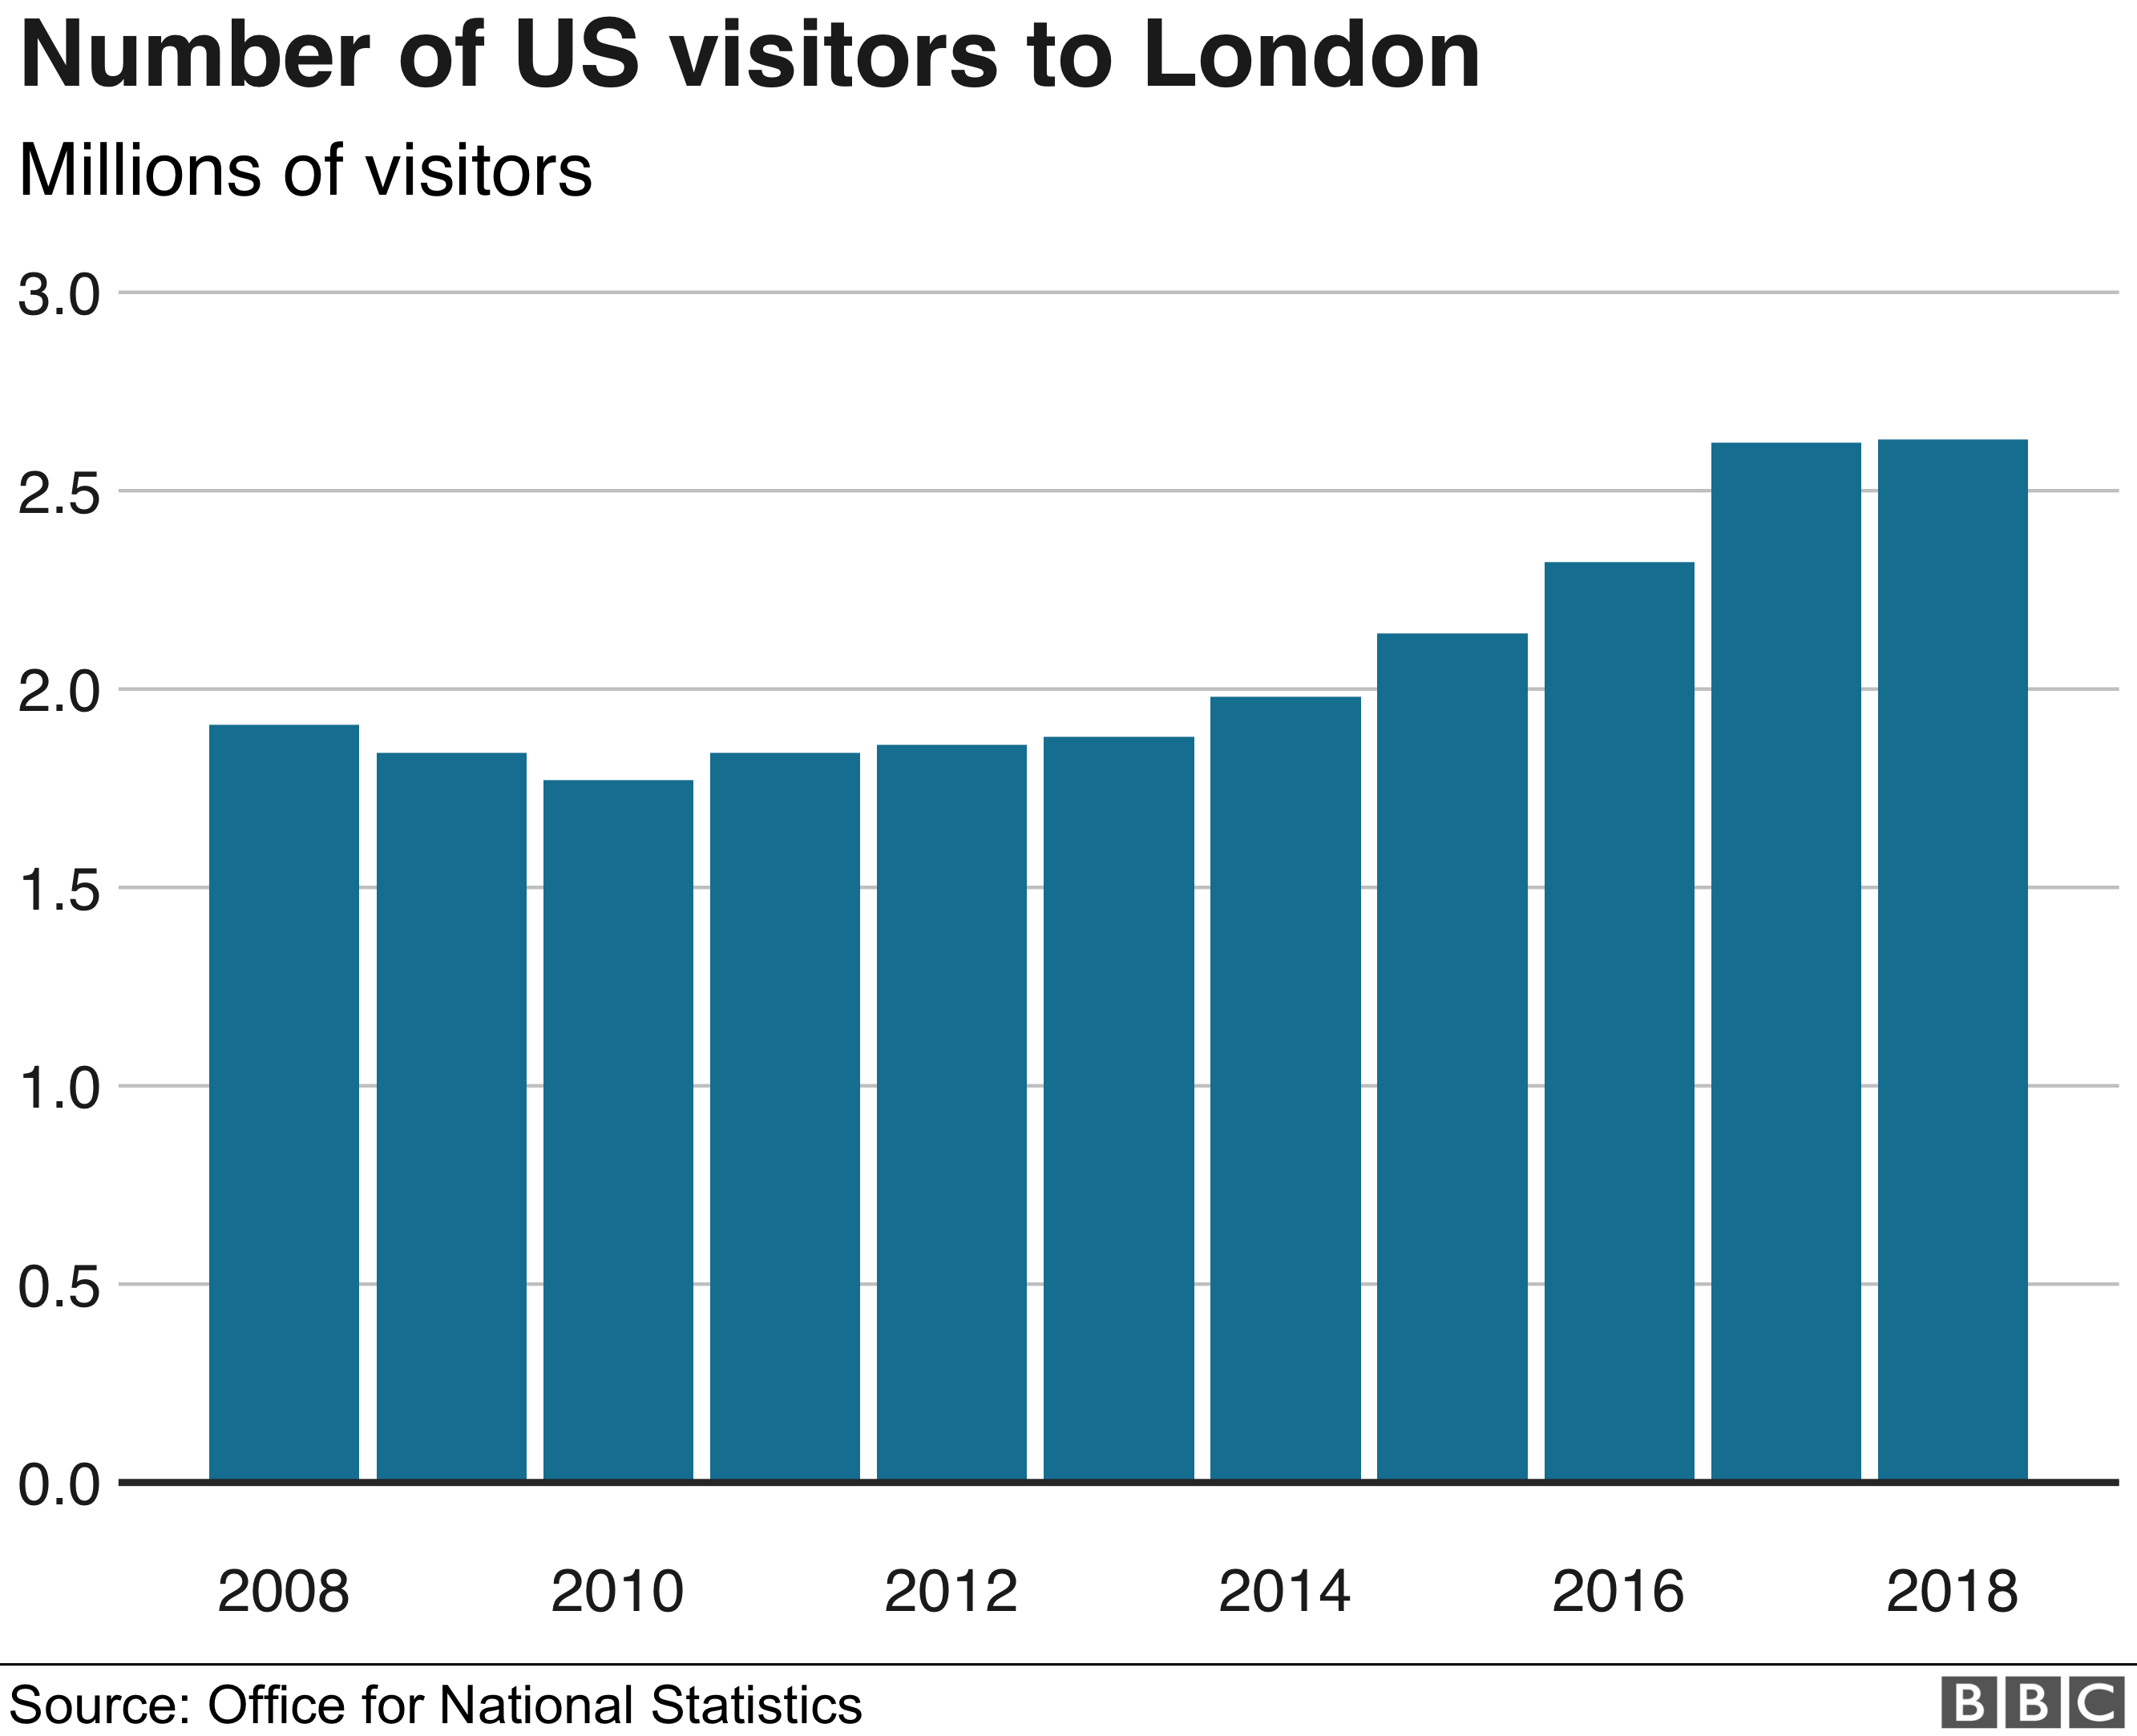 Graph showing an increase in the number of US visitors to London over the last decade